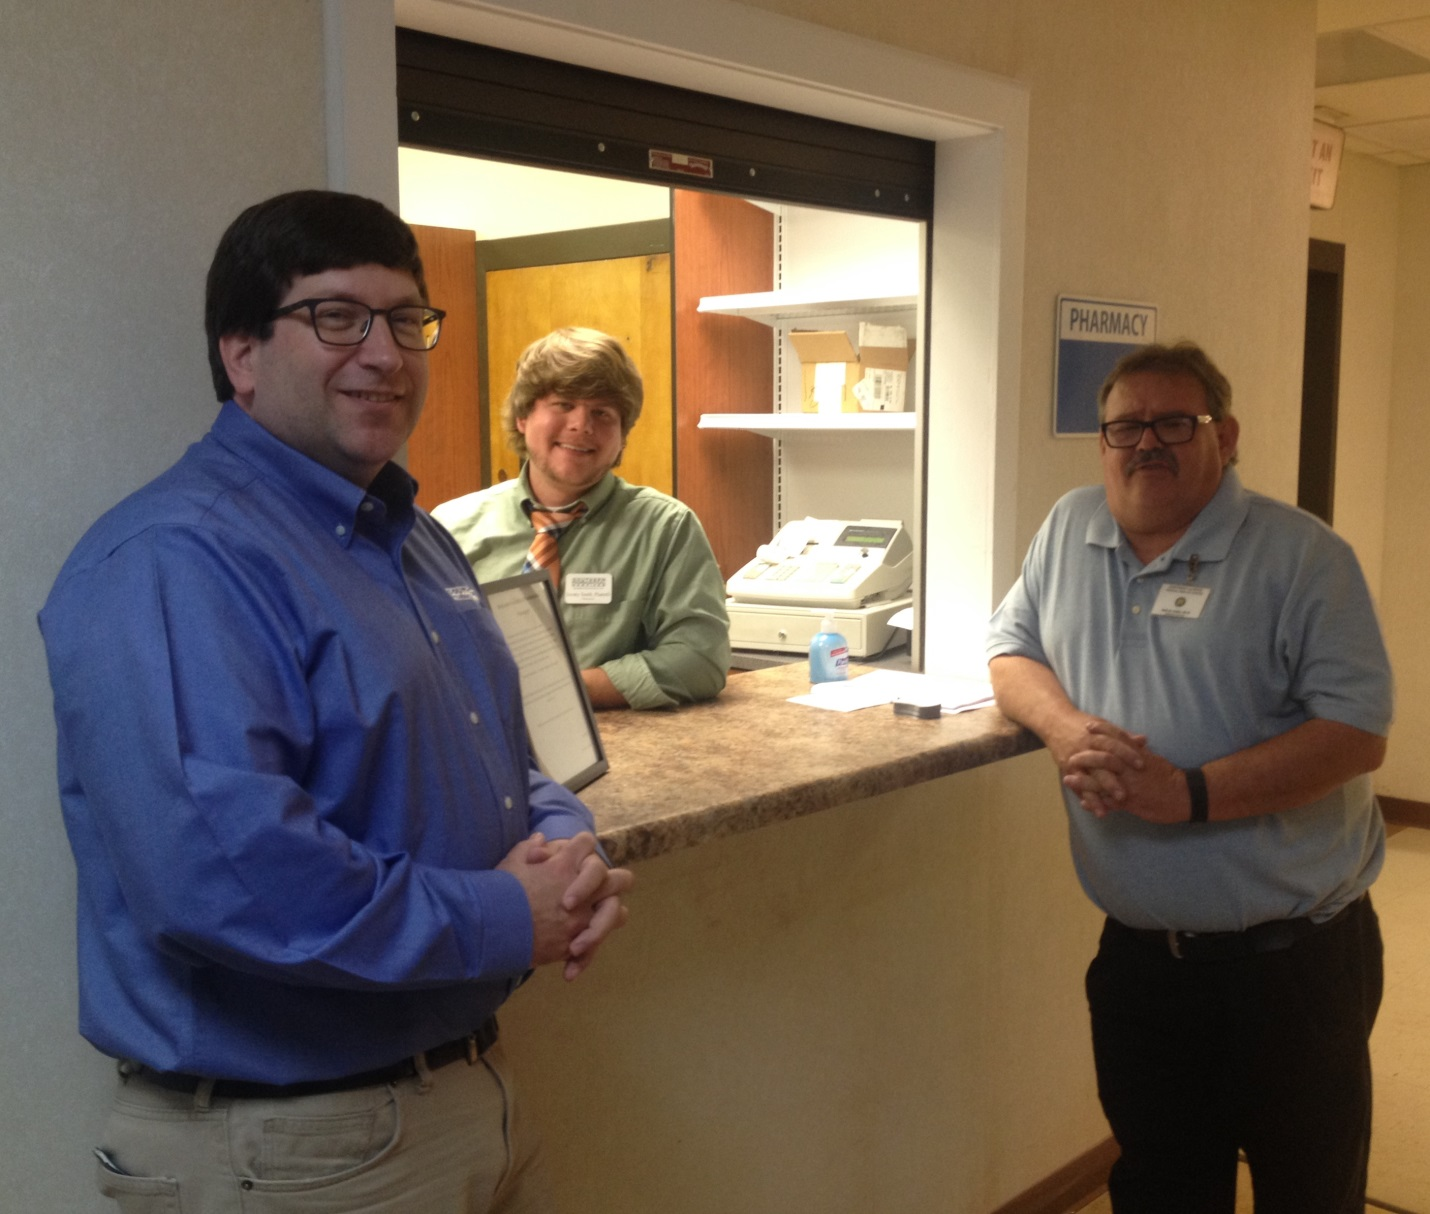 Philip Boyd, president of SPS, Jeremy Smith, pharmacist, and Dale Cottle, NWAMHC executive director.